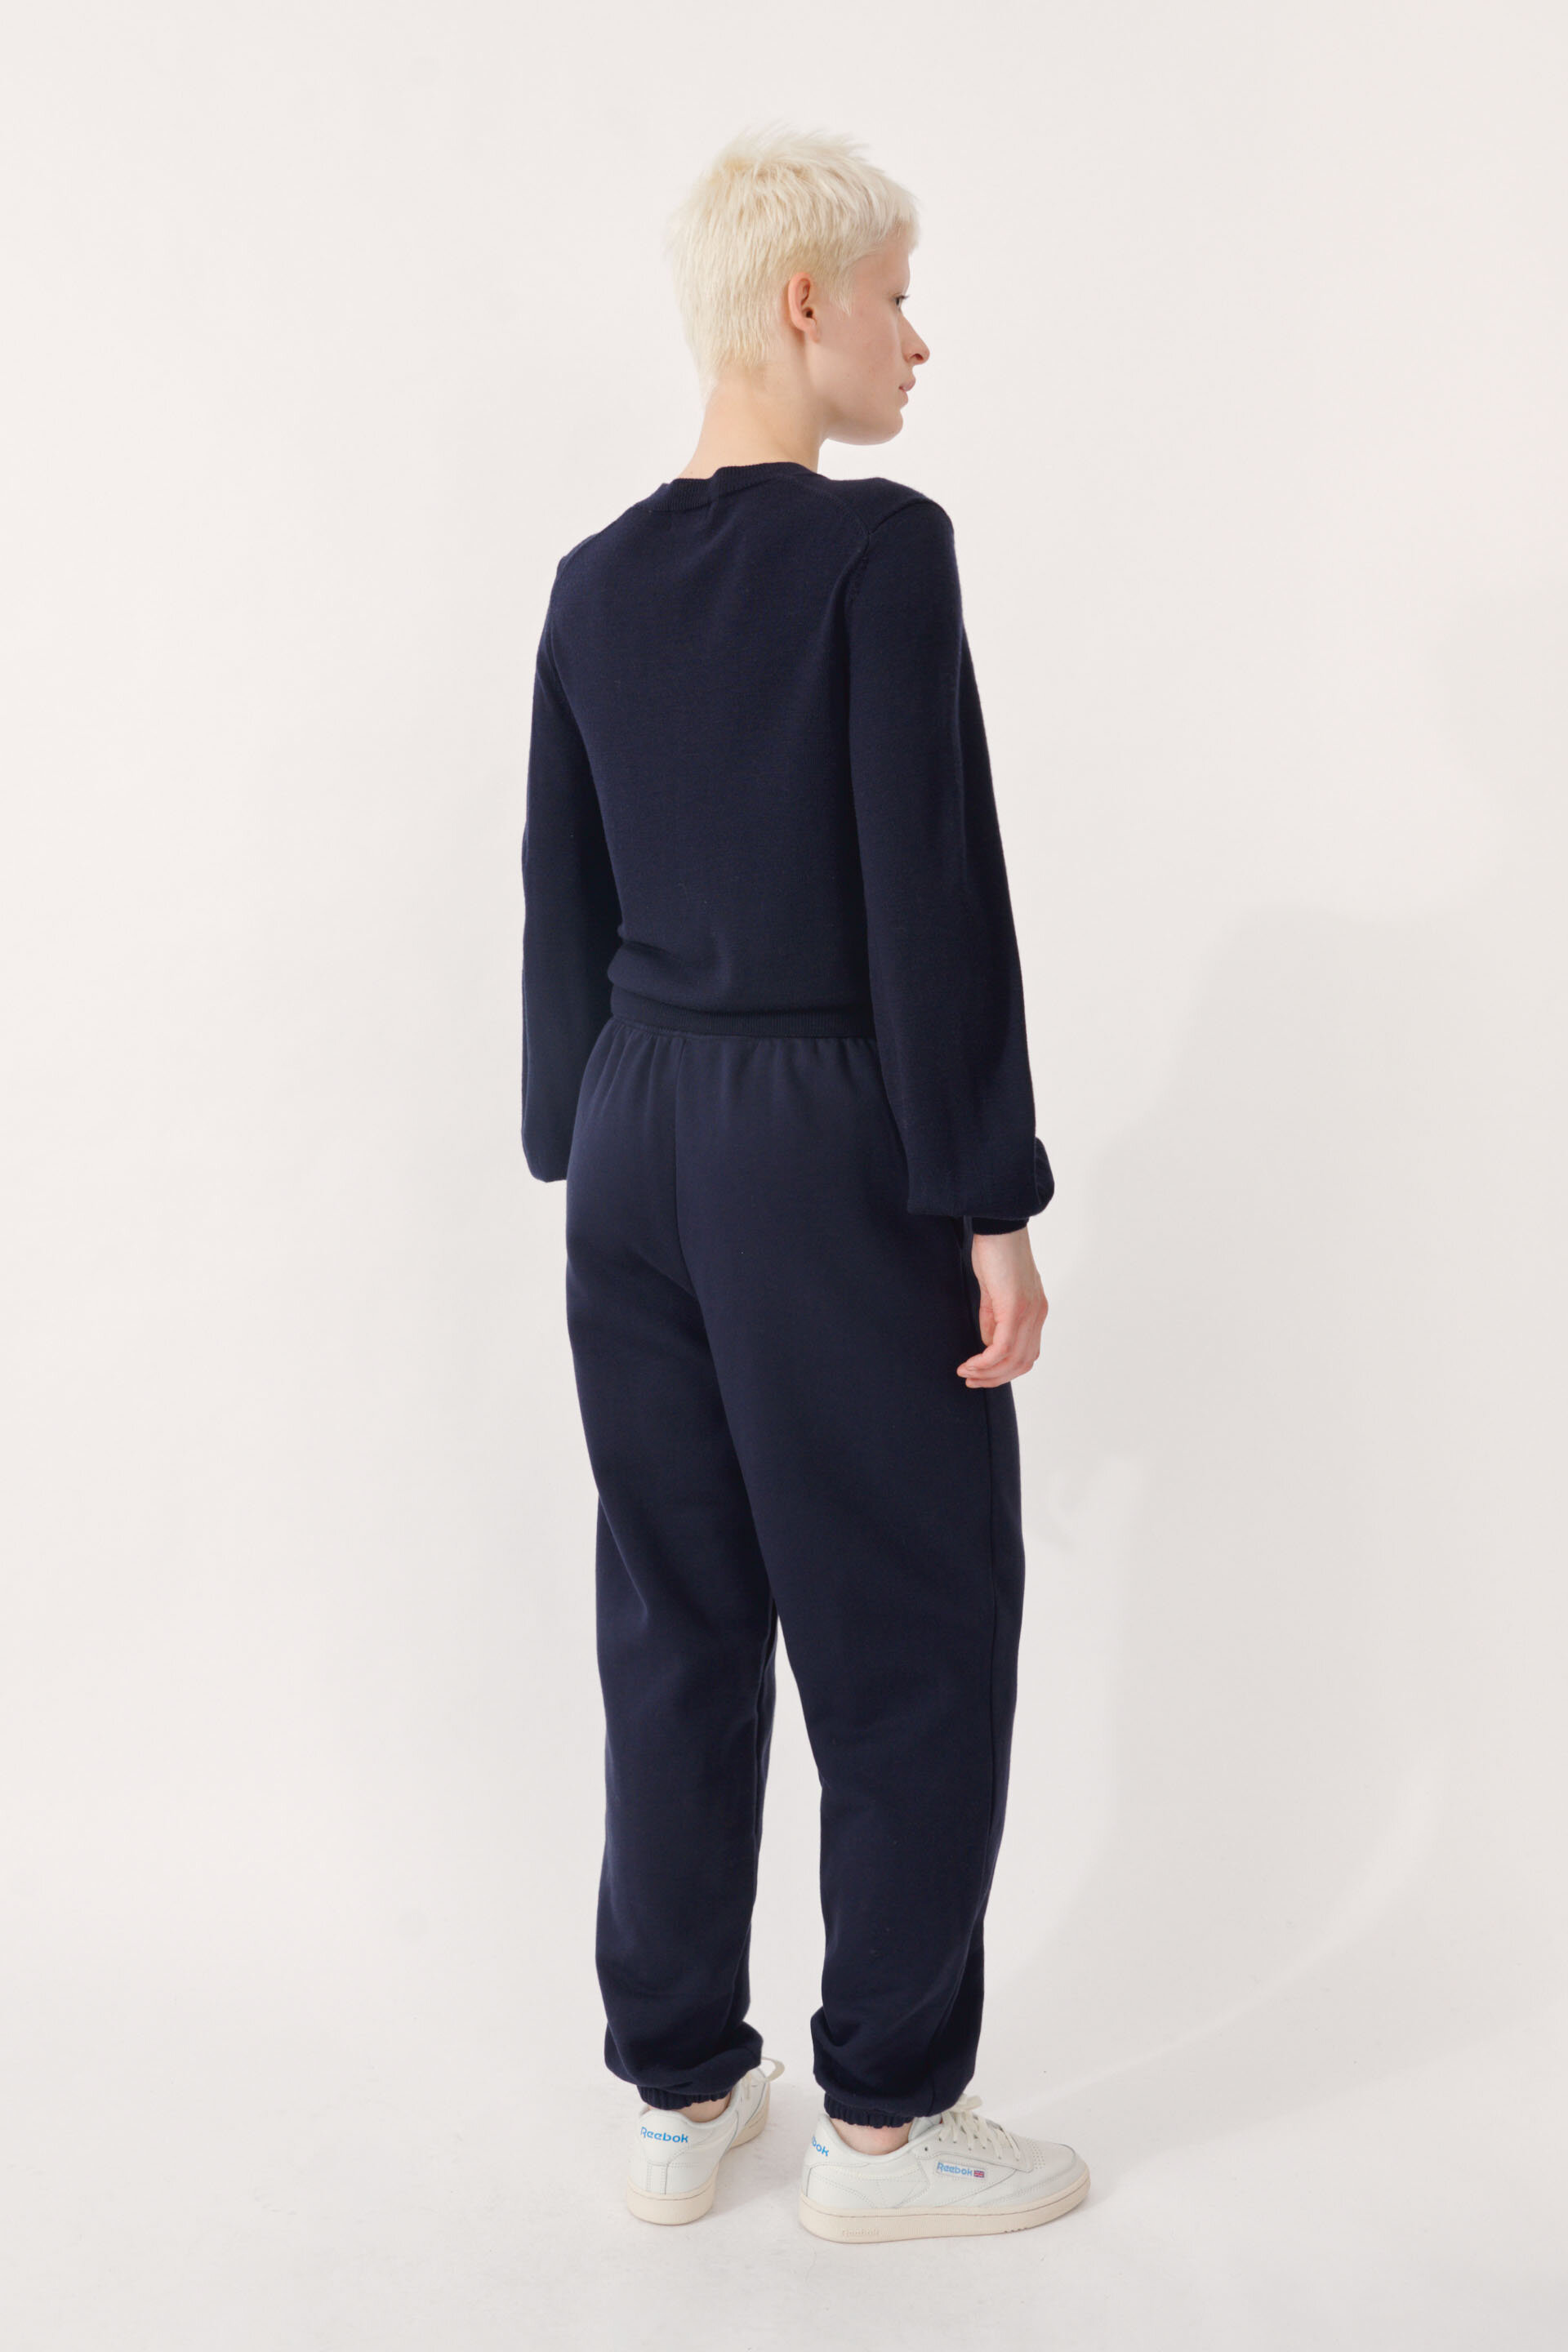 """Calynn Cardigan Night Sky A thin-knit, fitted cardigan with button closures down the front and the """"UND"""" logo embroidered on the side - detail image"""